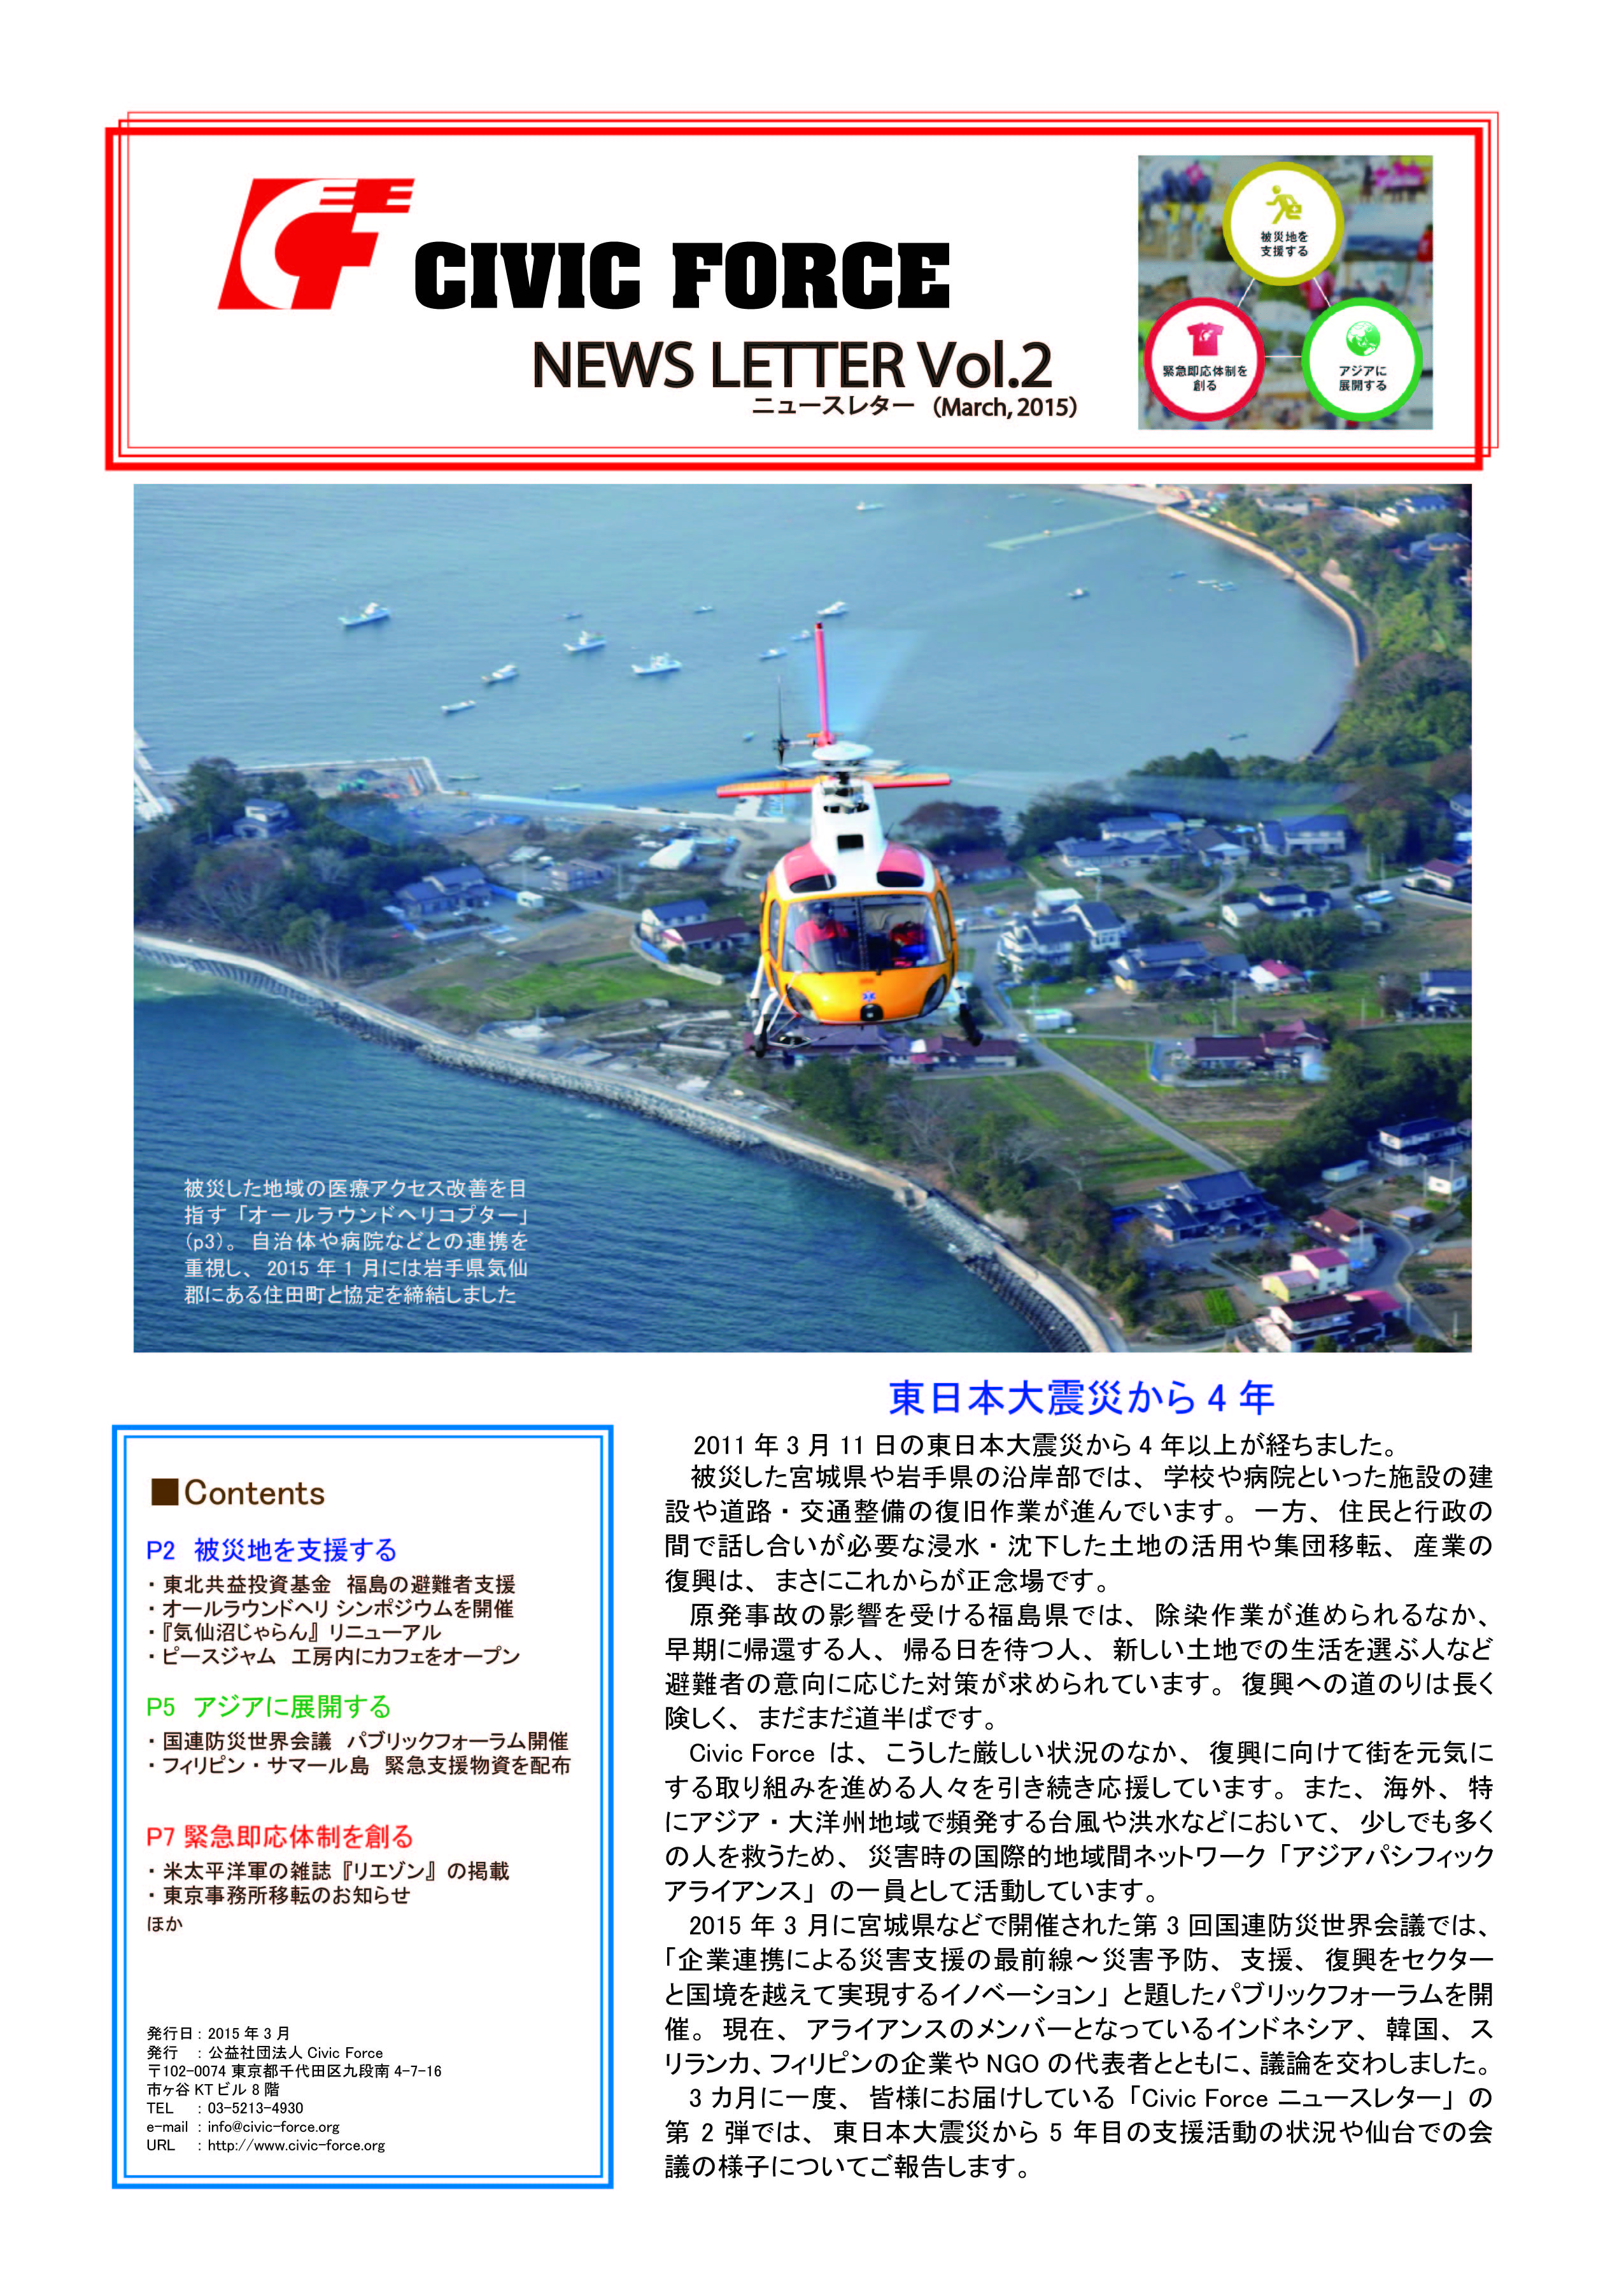 NewsLetter Vol.2-2015Mar-01.jpg